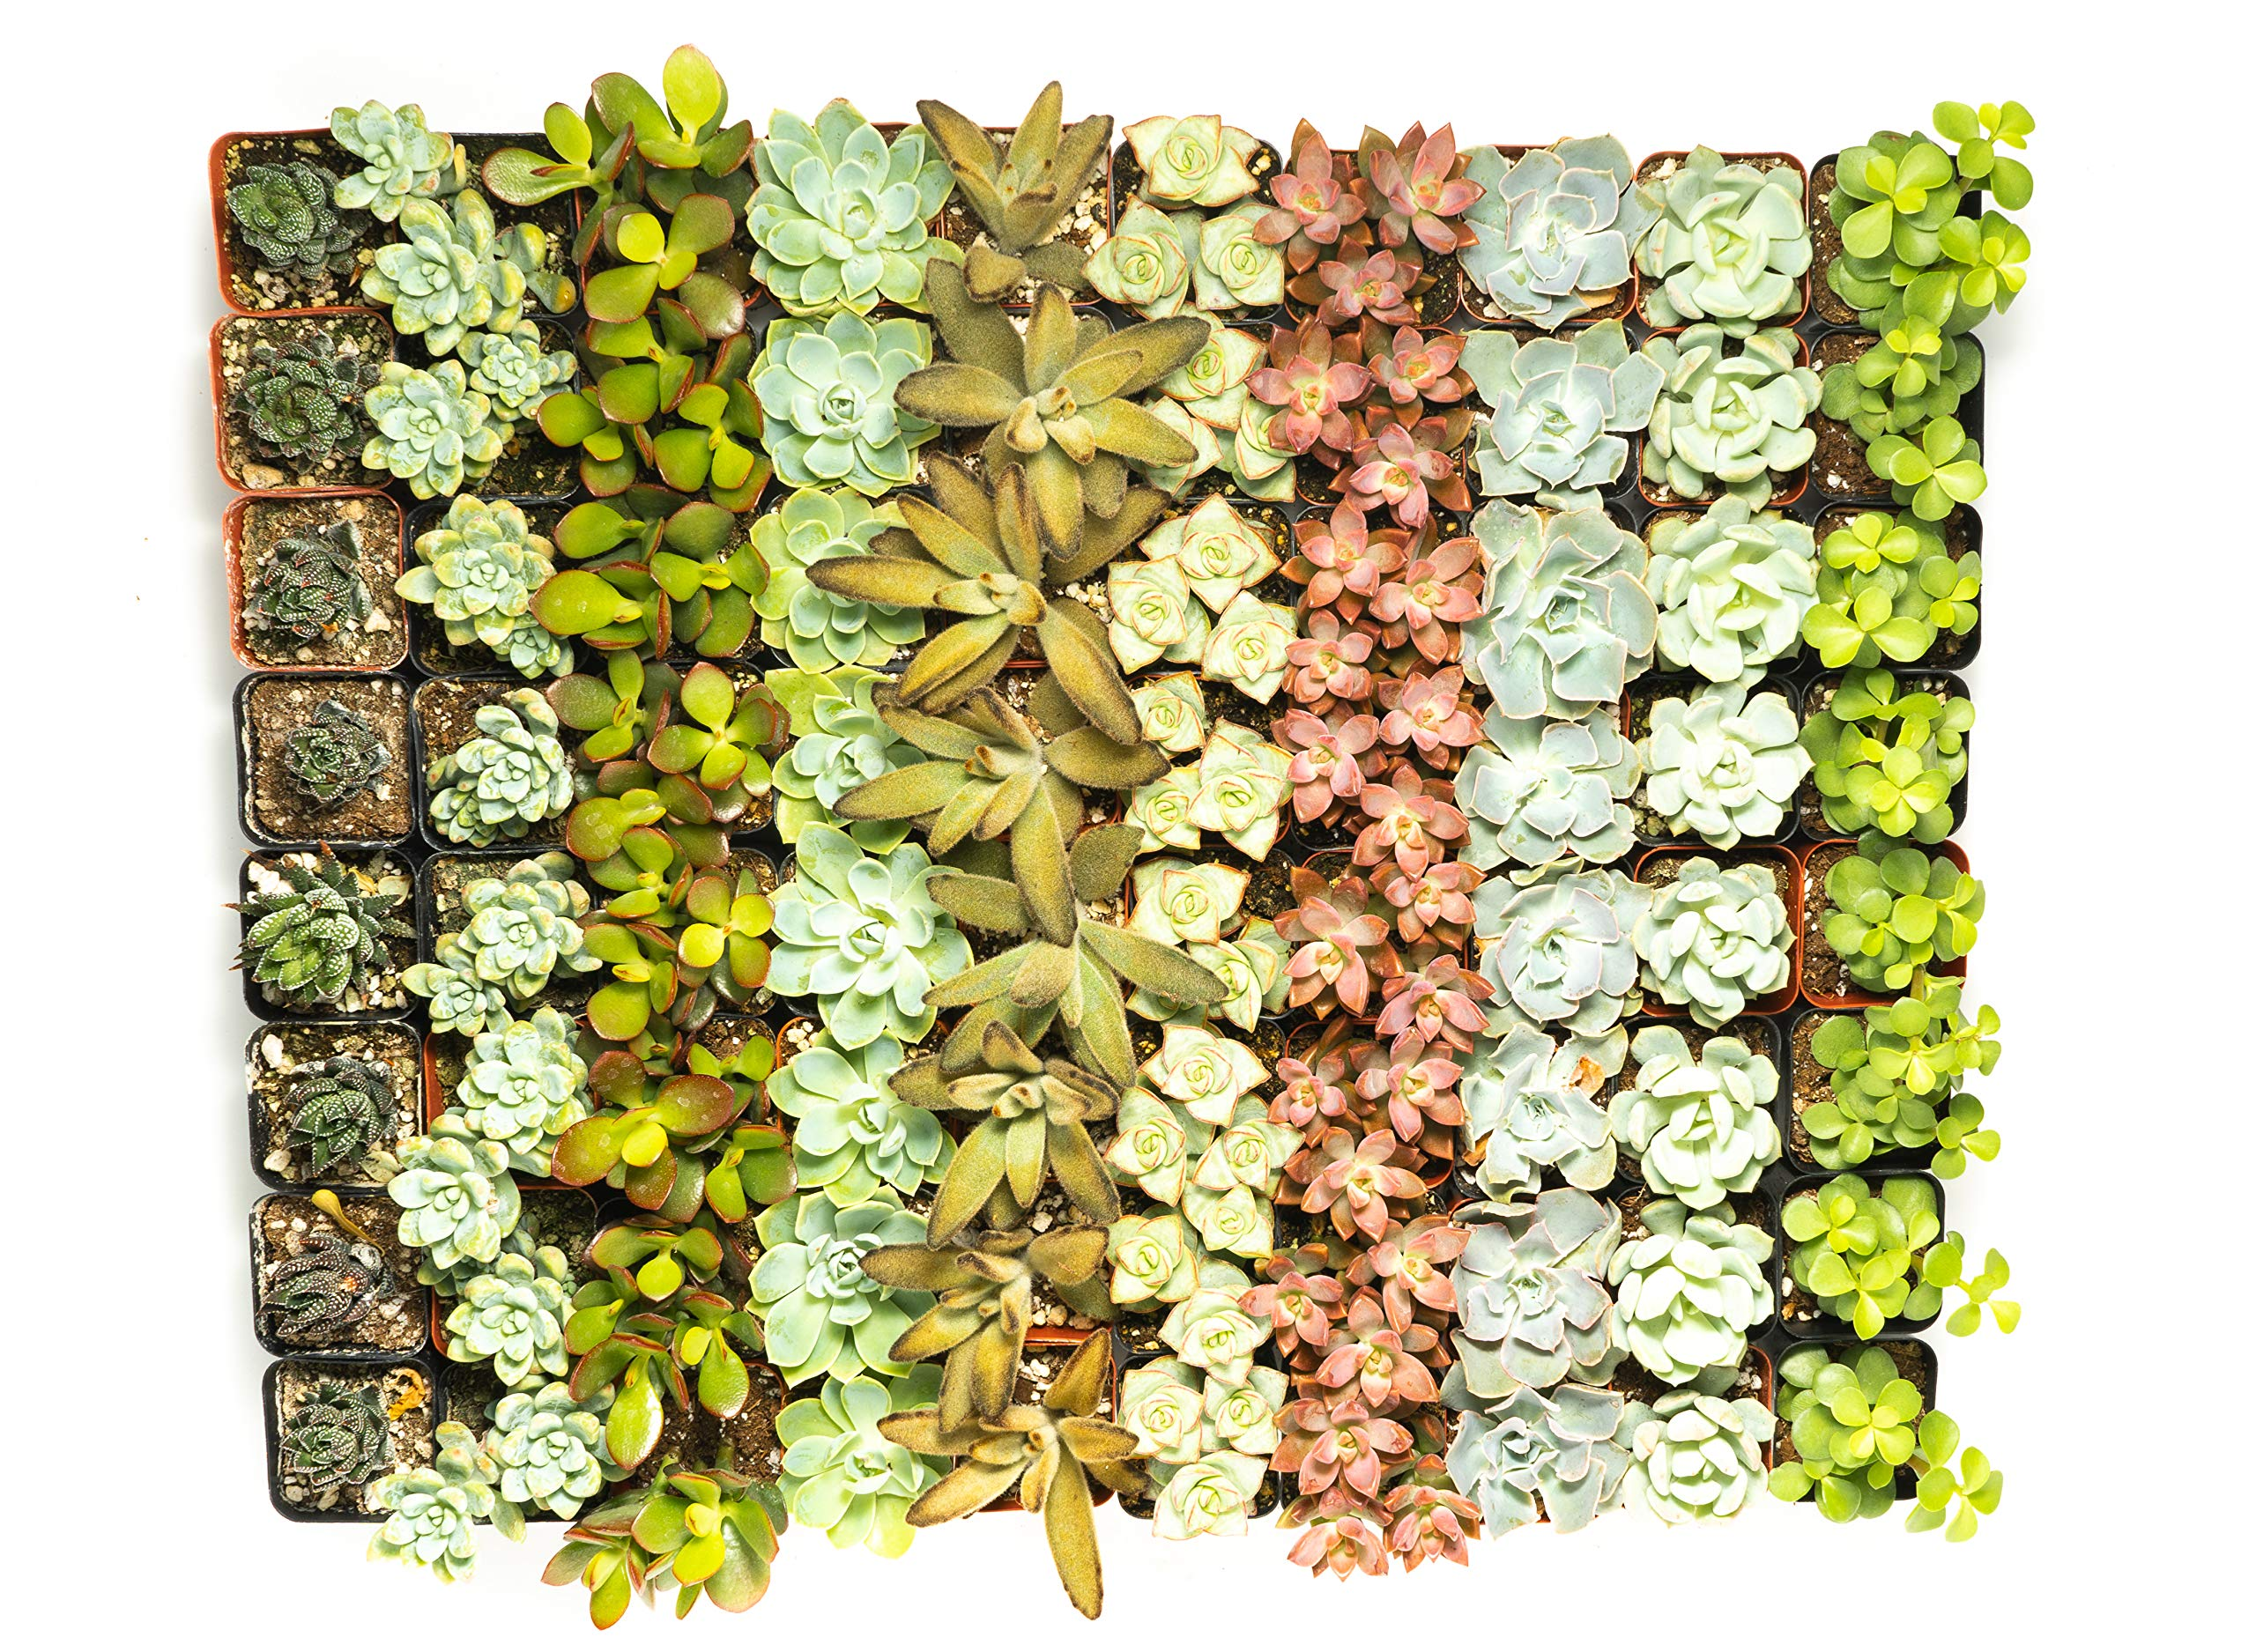 Succulent Assorted Pack- Perfect for Weddings, Party Favors, Home Gardens, and Social Events by Jiimz (100 Pack)